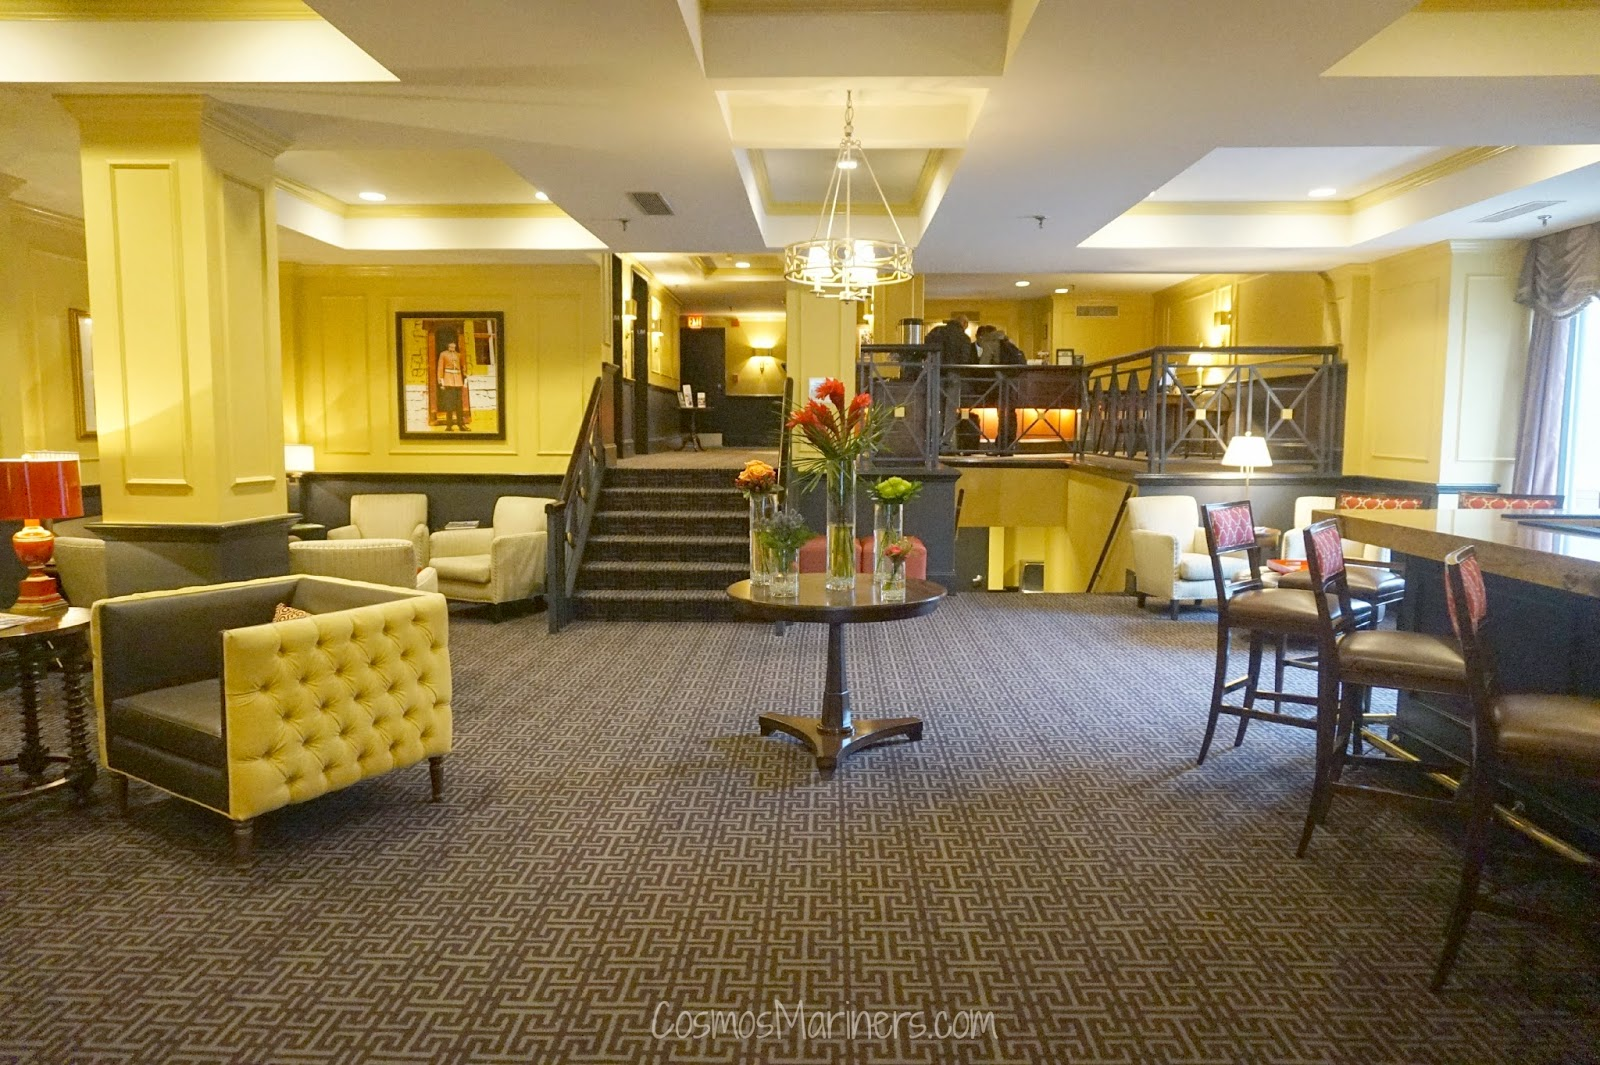 The Dunhill Hotel, Charlotte, North Carolina: A Hotel Review | CosmosMariners.com